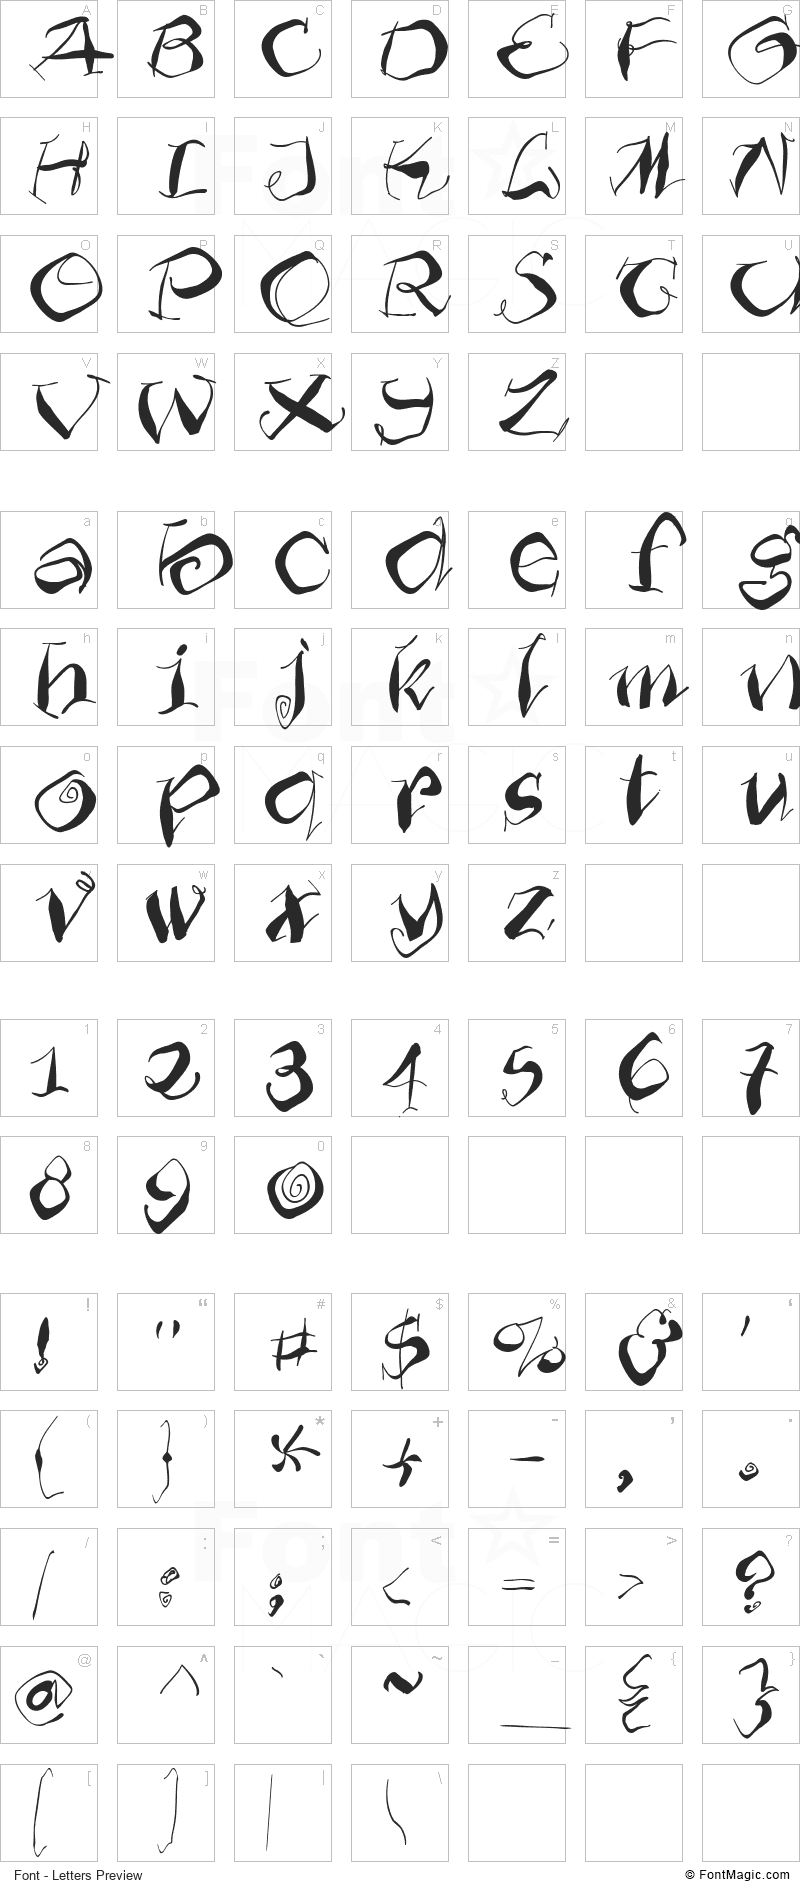 Furioso Font - All Latters Preview Chart